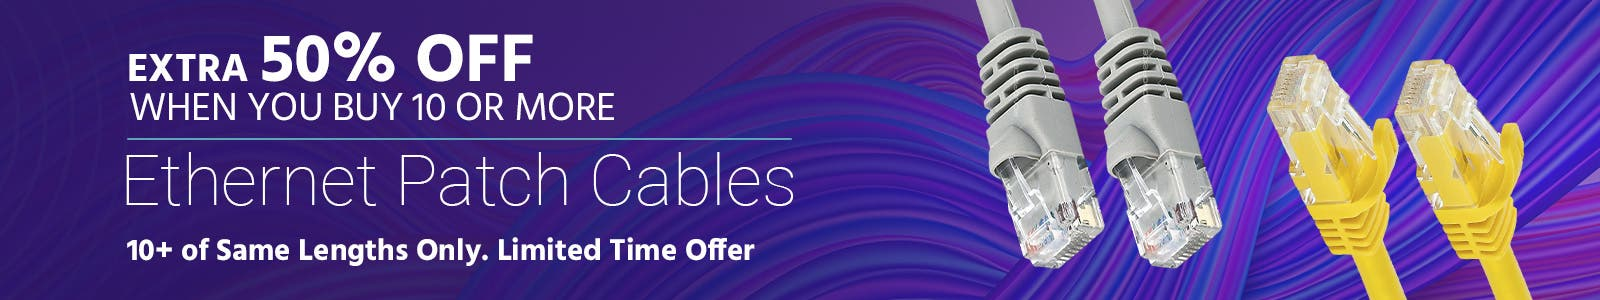 Get Extra 50% OFF When You Buy 10 or More, Ethernet Patch Cables, Limited Time Offer